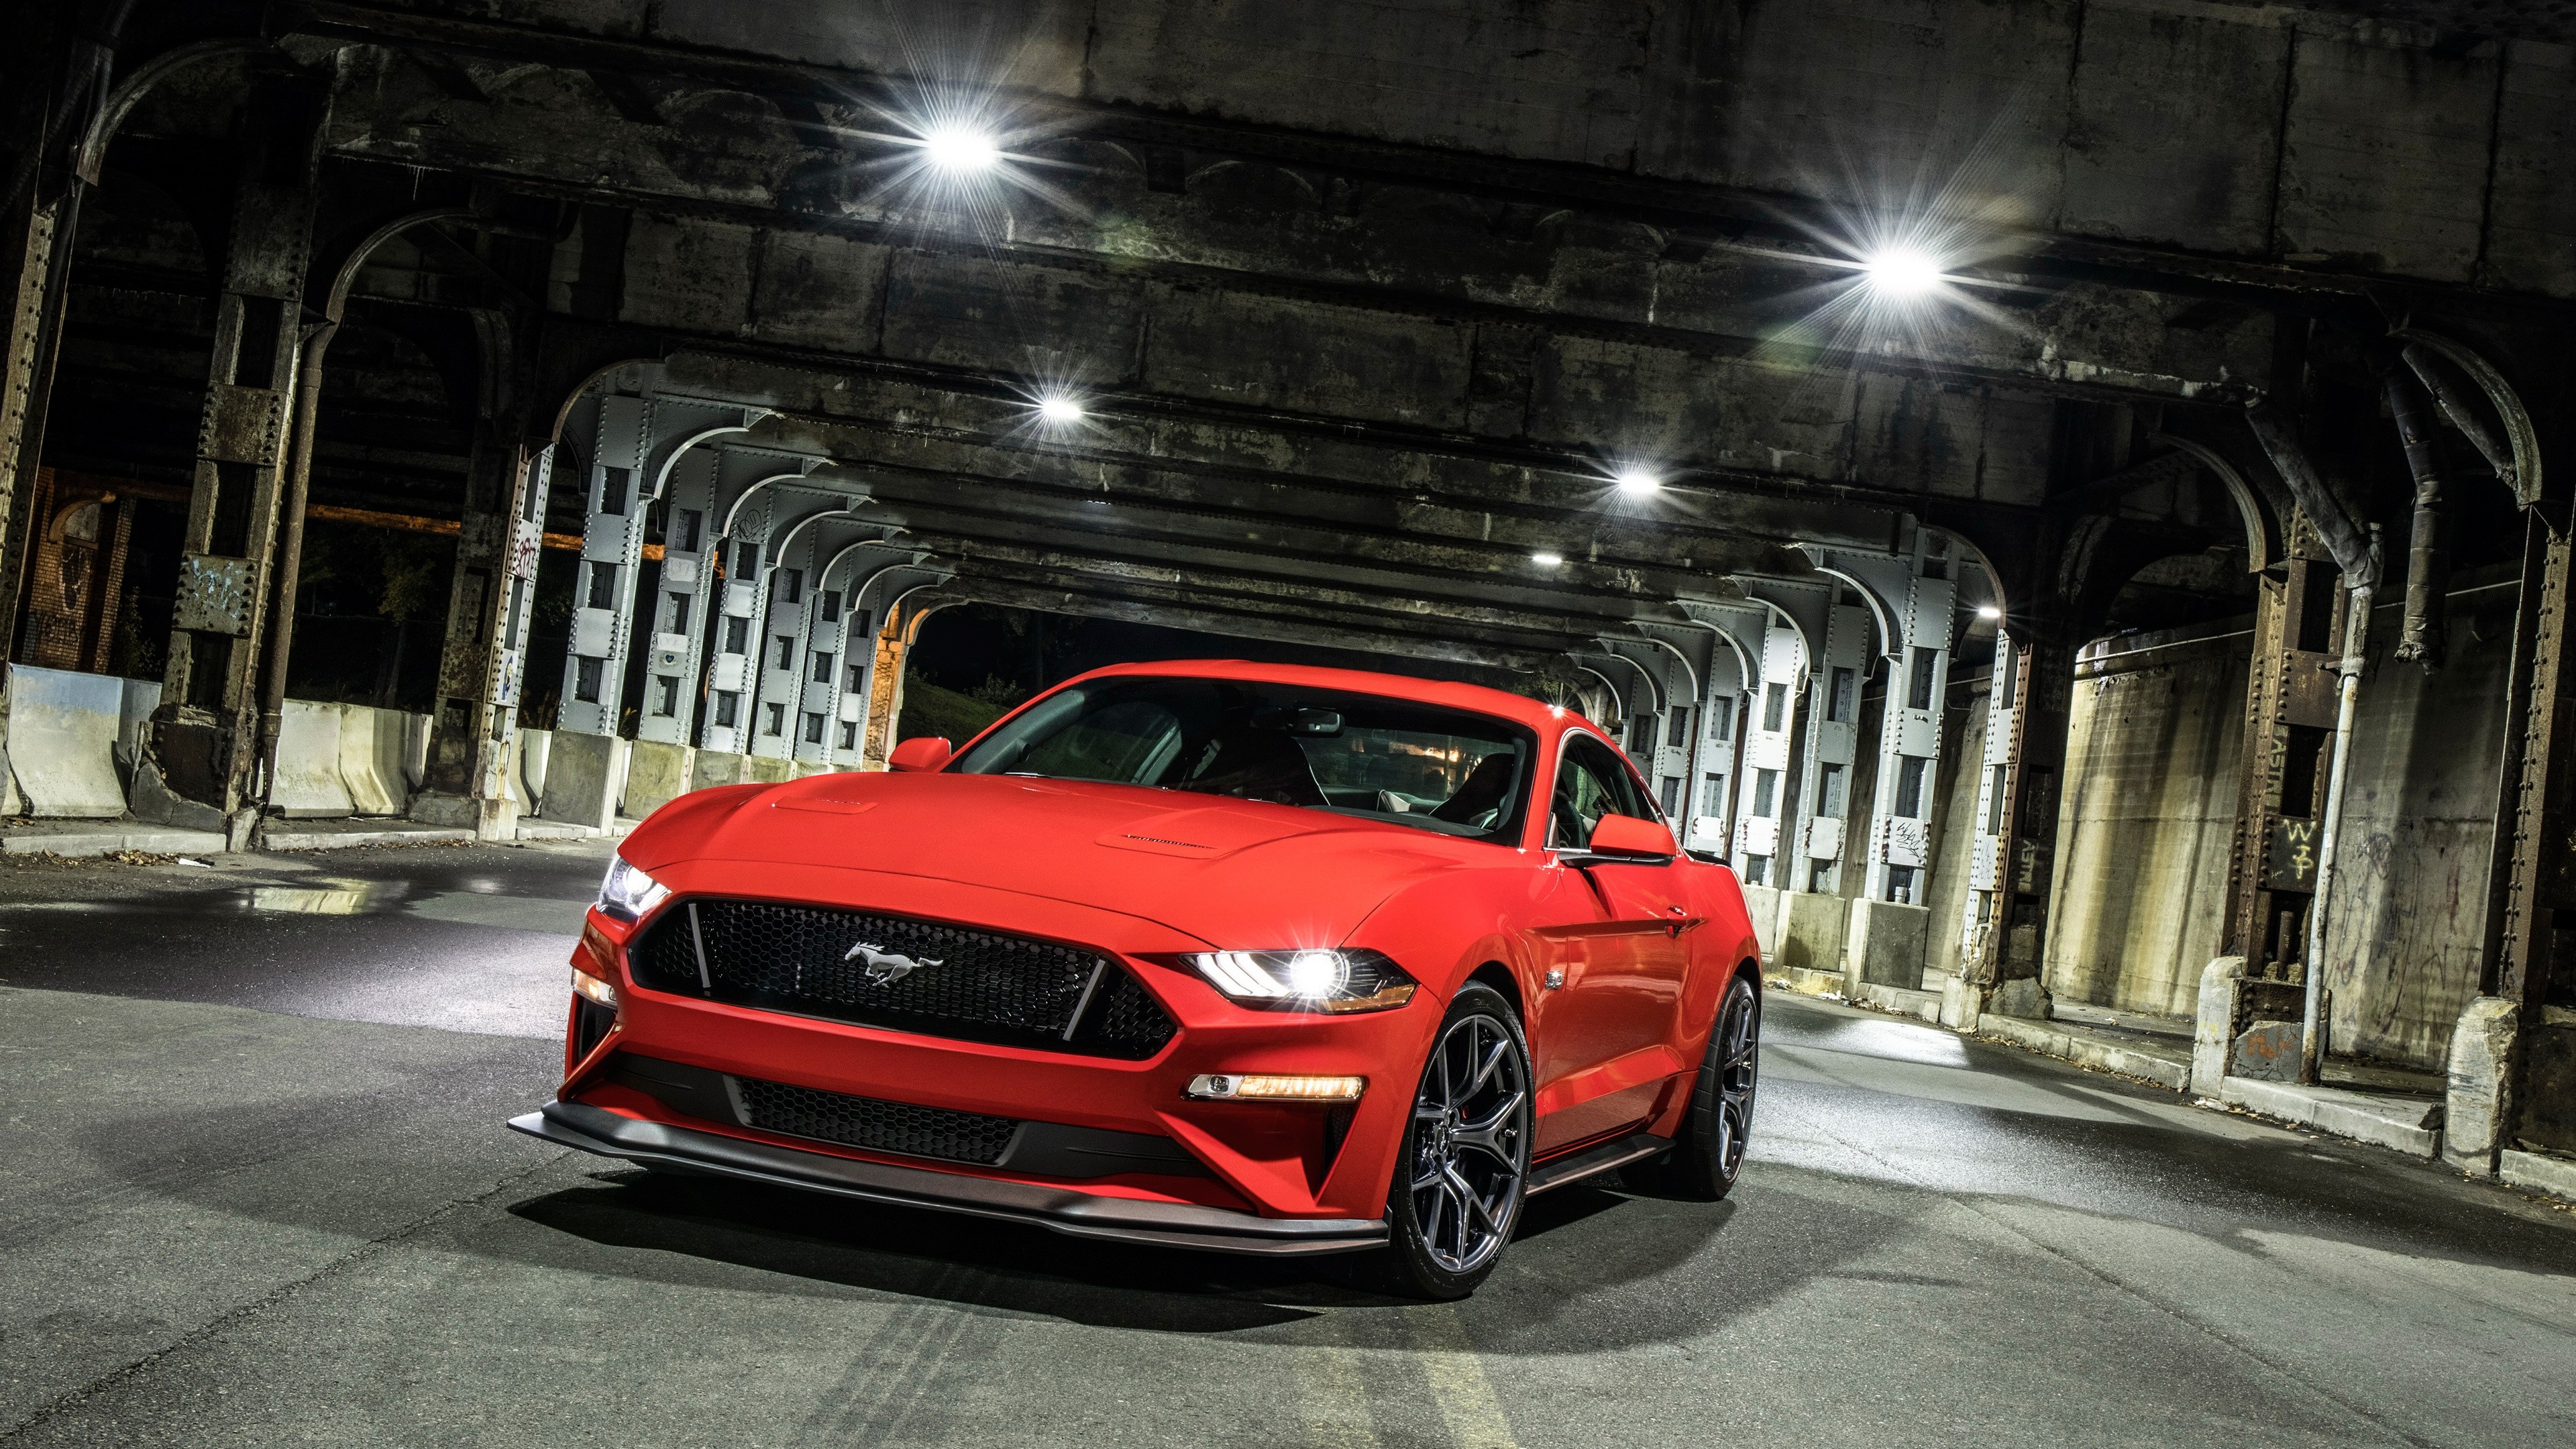 60 Mustang 4K Wallpapers on WallpaperPlay 3840x2160